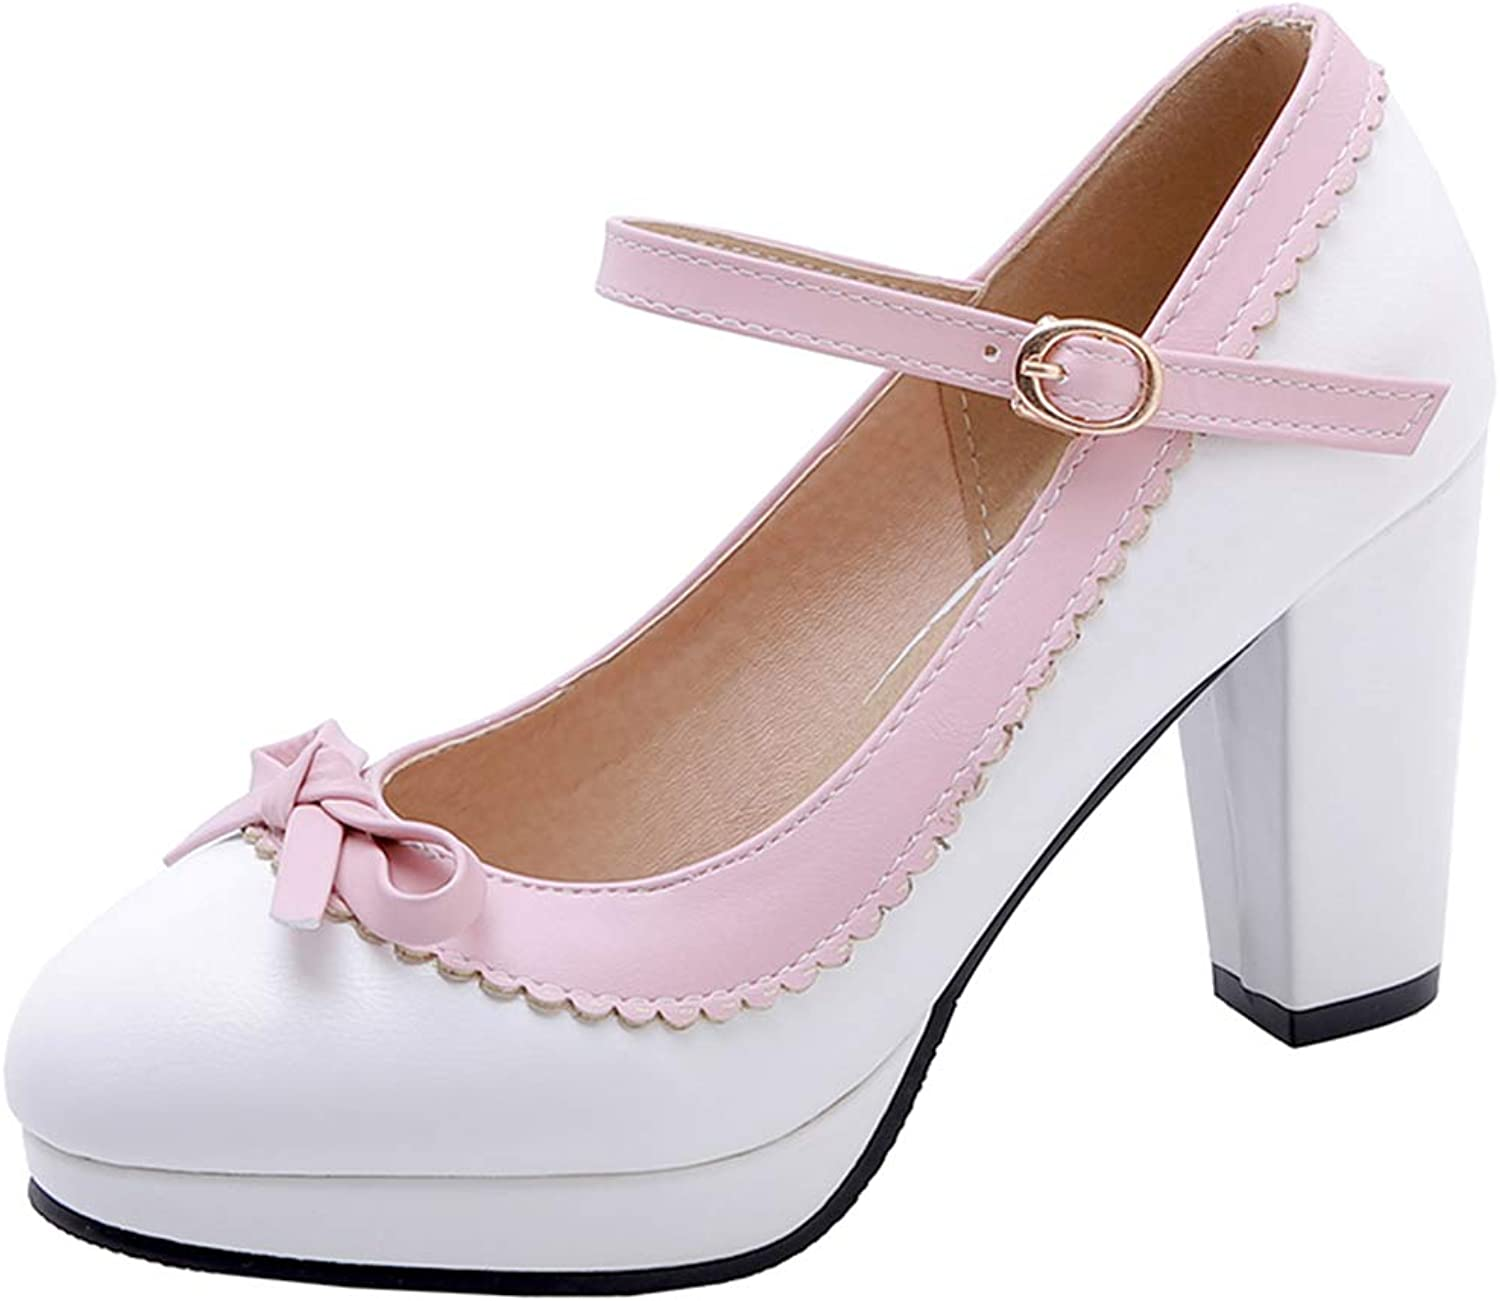 VIMISAOI Women's Sweety Bow Mary Janes Platform Chunky Block High Heel Strappy Dress Pumps Court shoes